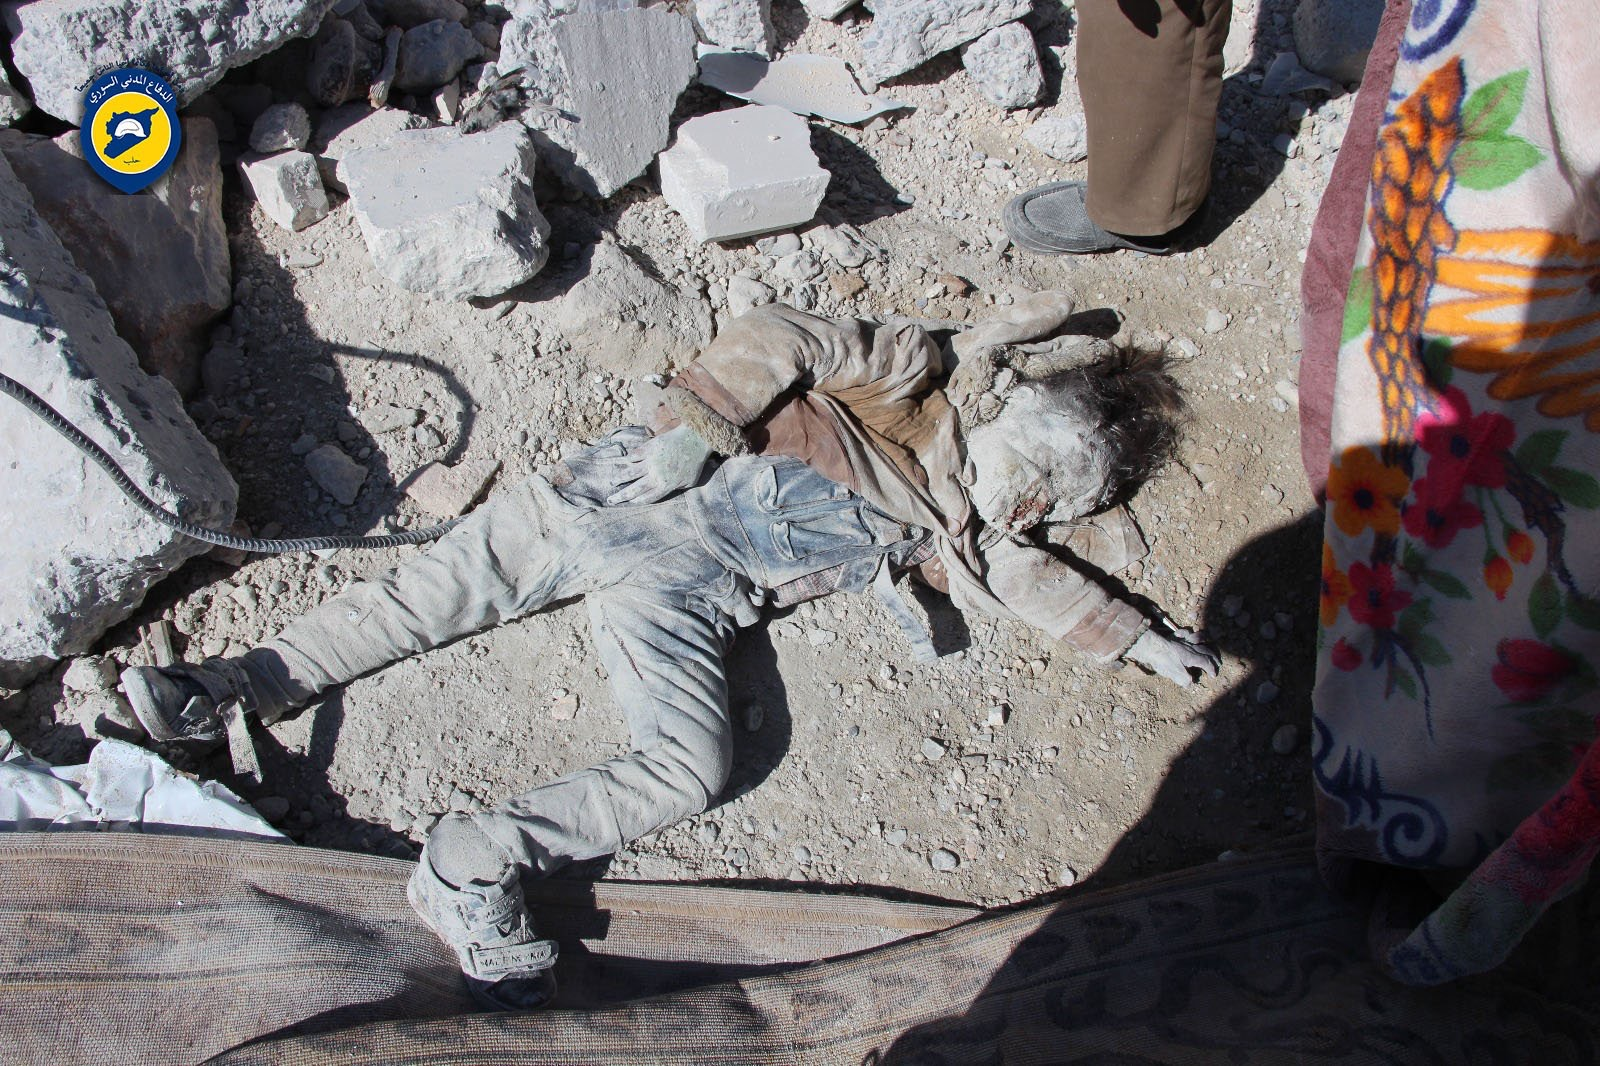 Child murdered by a bomb attack in Syria.